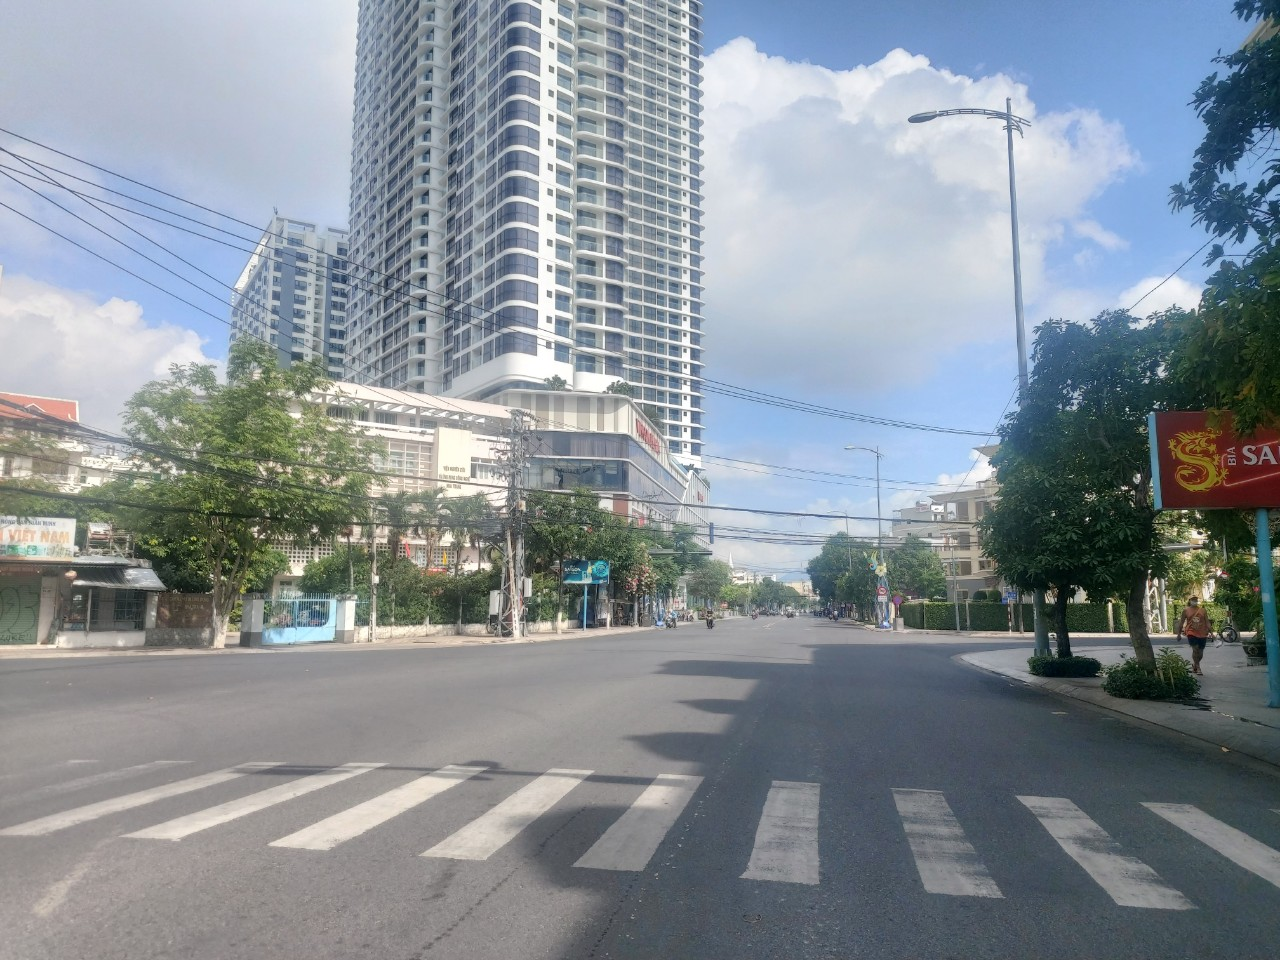 Mostly-deserted Le Thanh Ton Street